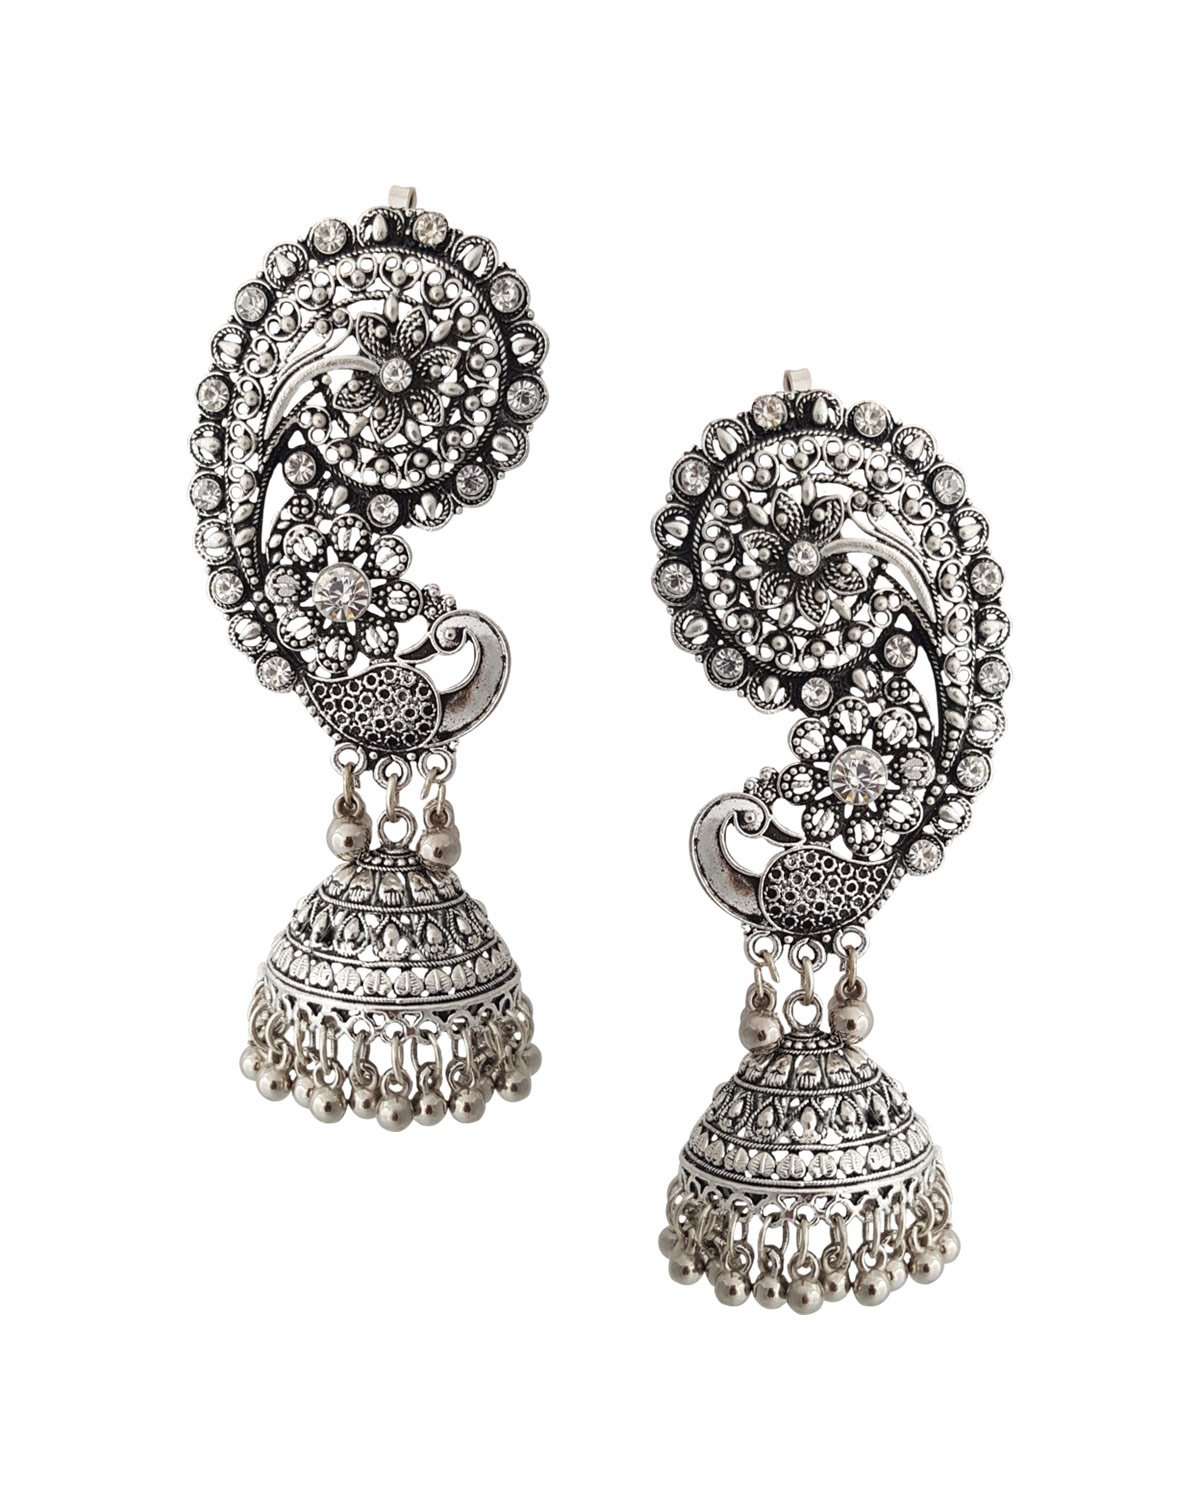 Young & Forever Tribal Muse Collection Splendid Brass Jaipur Jewels Rajasthani Gypsy Earrings For Women By CrazeeMania E371